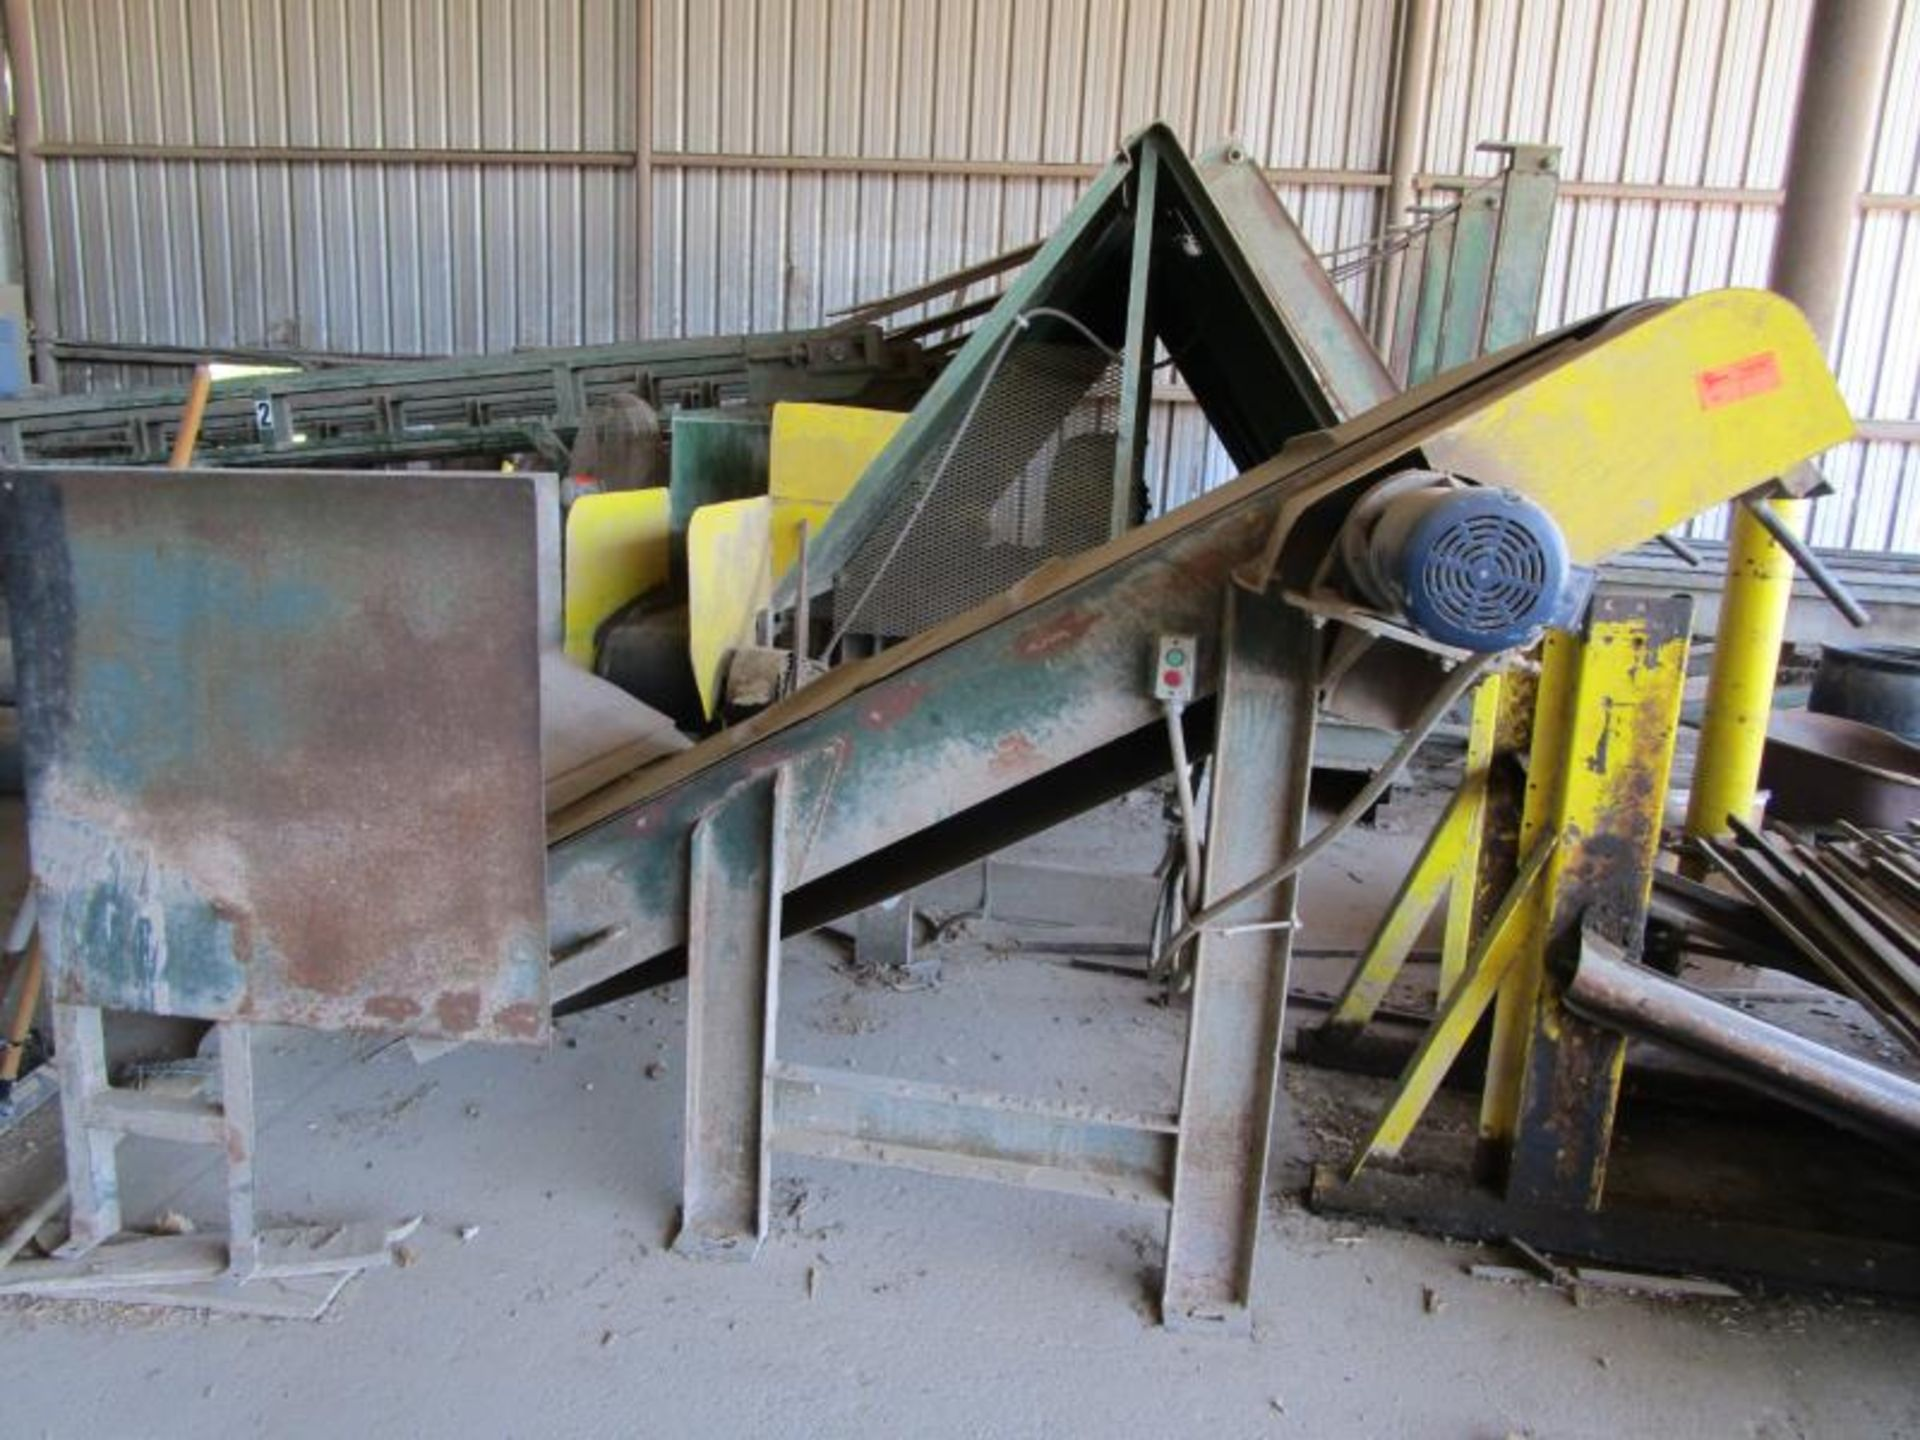 Lot 24 - Cleted Incline conveyor for stick accumulation and collection frame (4'x8')